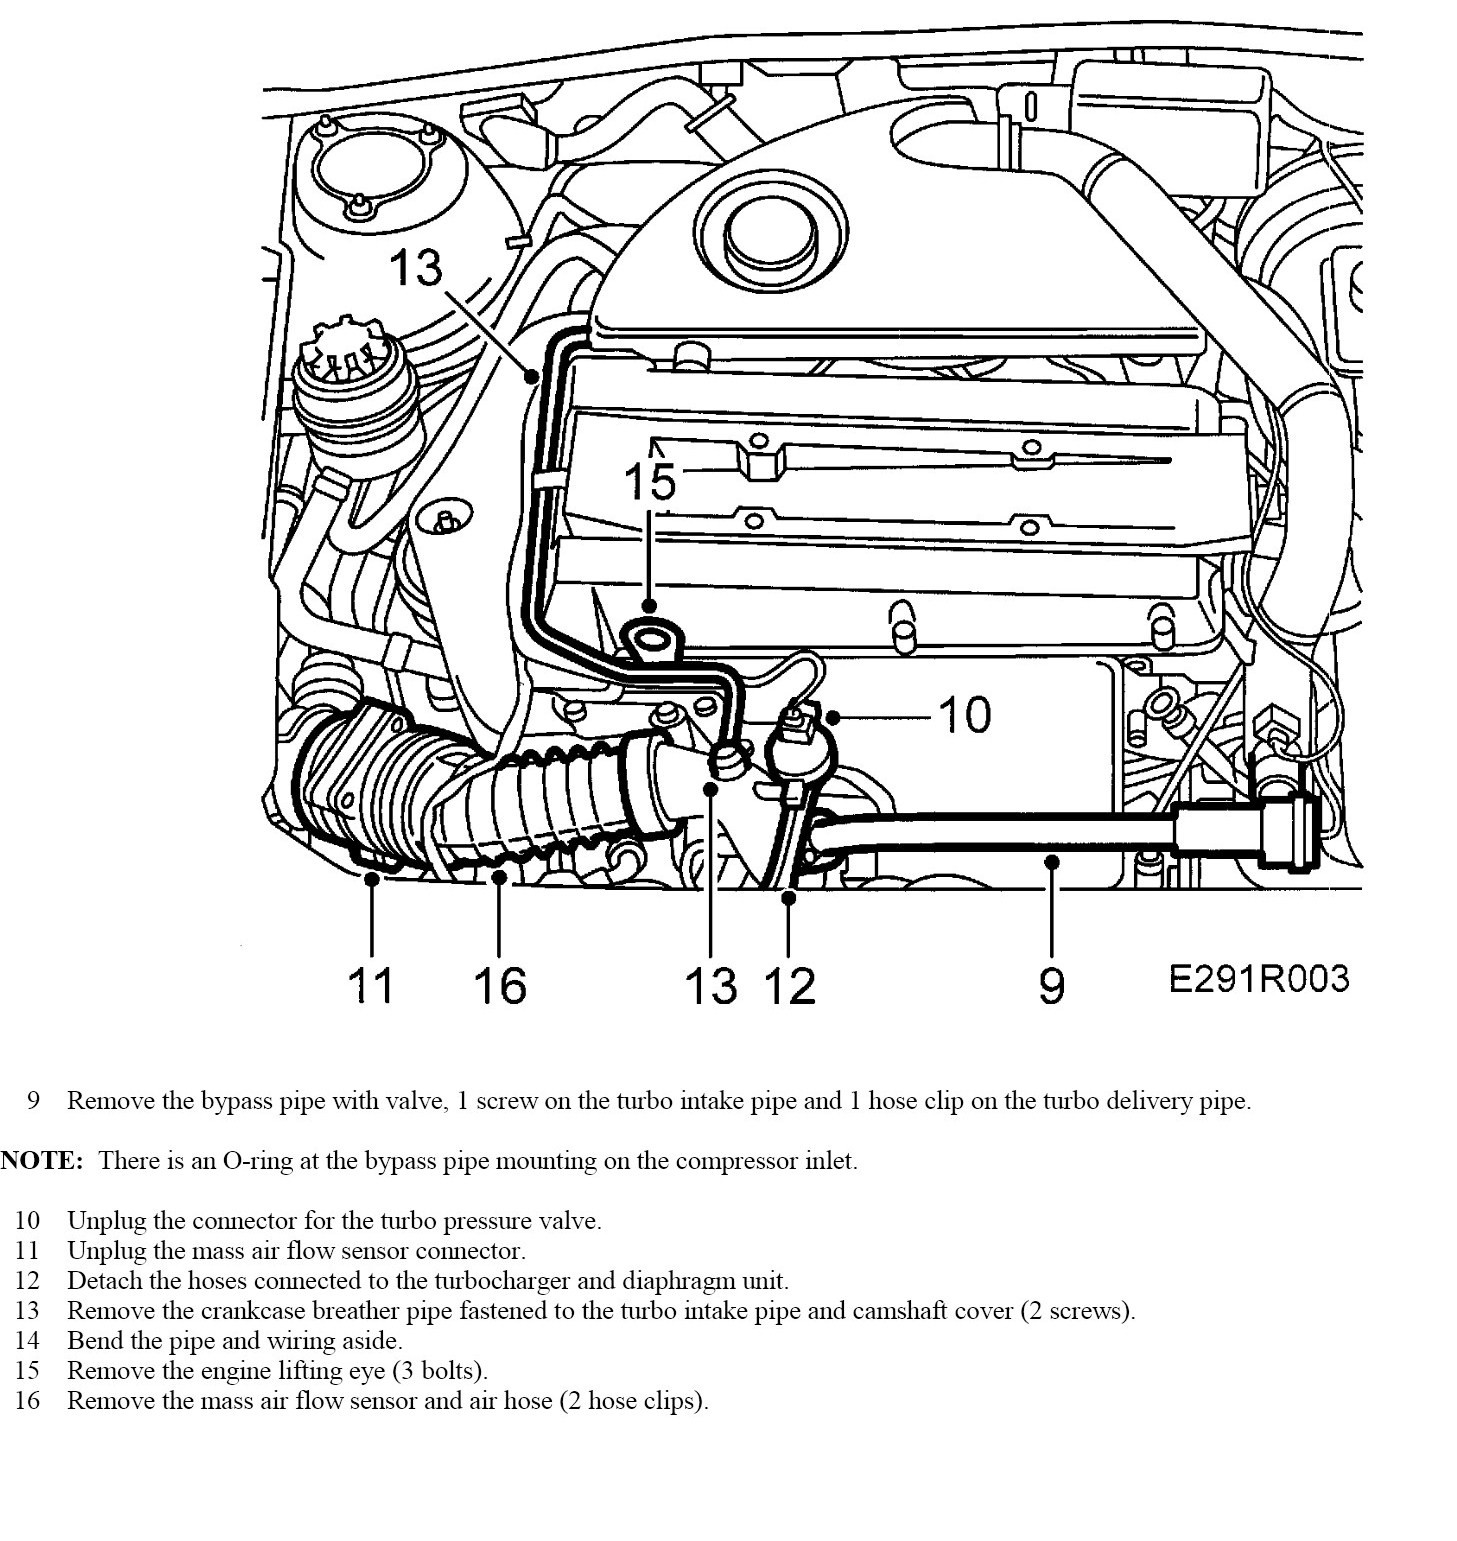 85 Toyota Fuse Panel Diagram likewise 1990 Acura Legend Wiring Diagram additionally 94 Grand Am Fuses Diagram additionally Fuse Box Diagram For 1987 Mercury Grand Marquis together with 86 Mustang Wiring Diagrams. on discussion t16272 ds549908